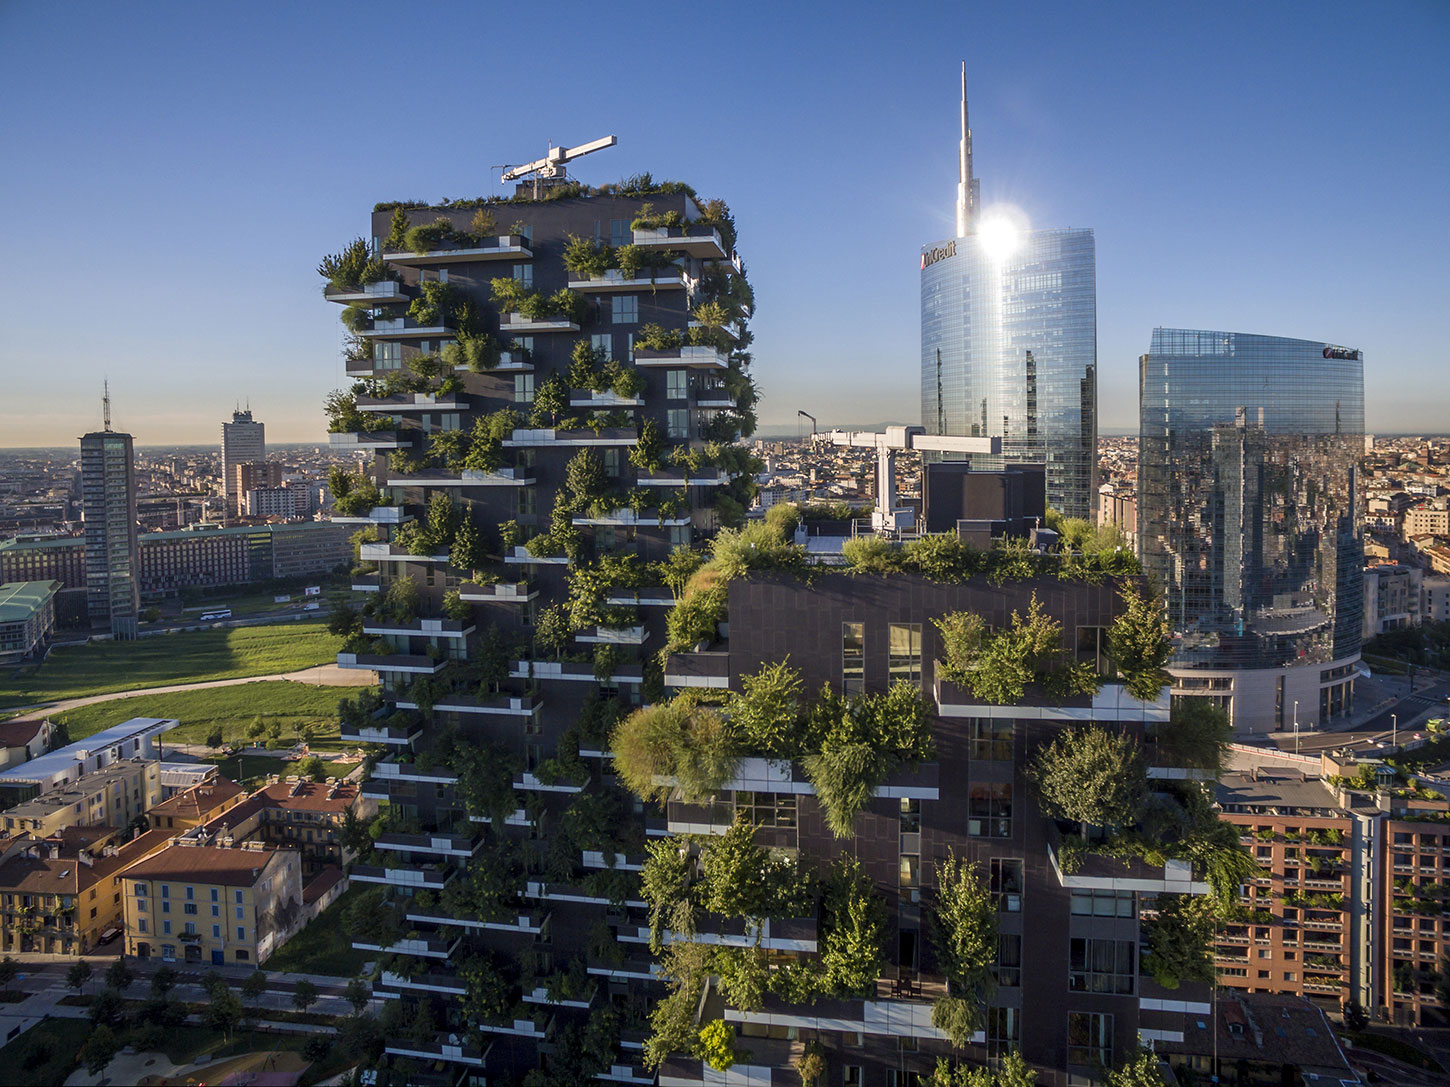 Bosco Verticale (Vertical Forest), Milan Featured Image